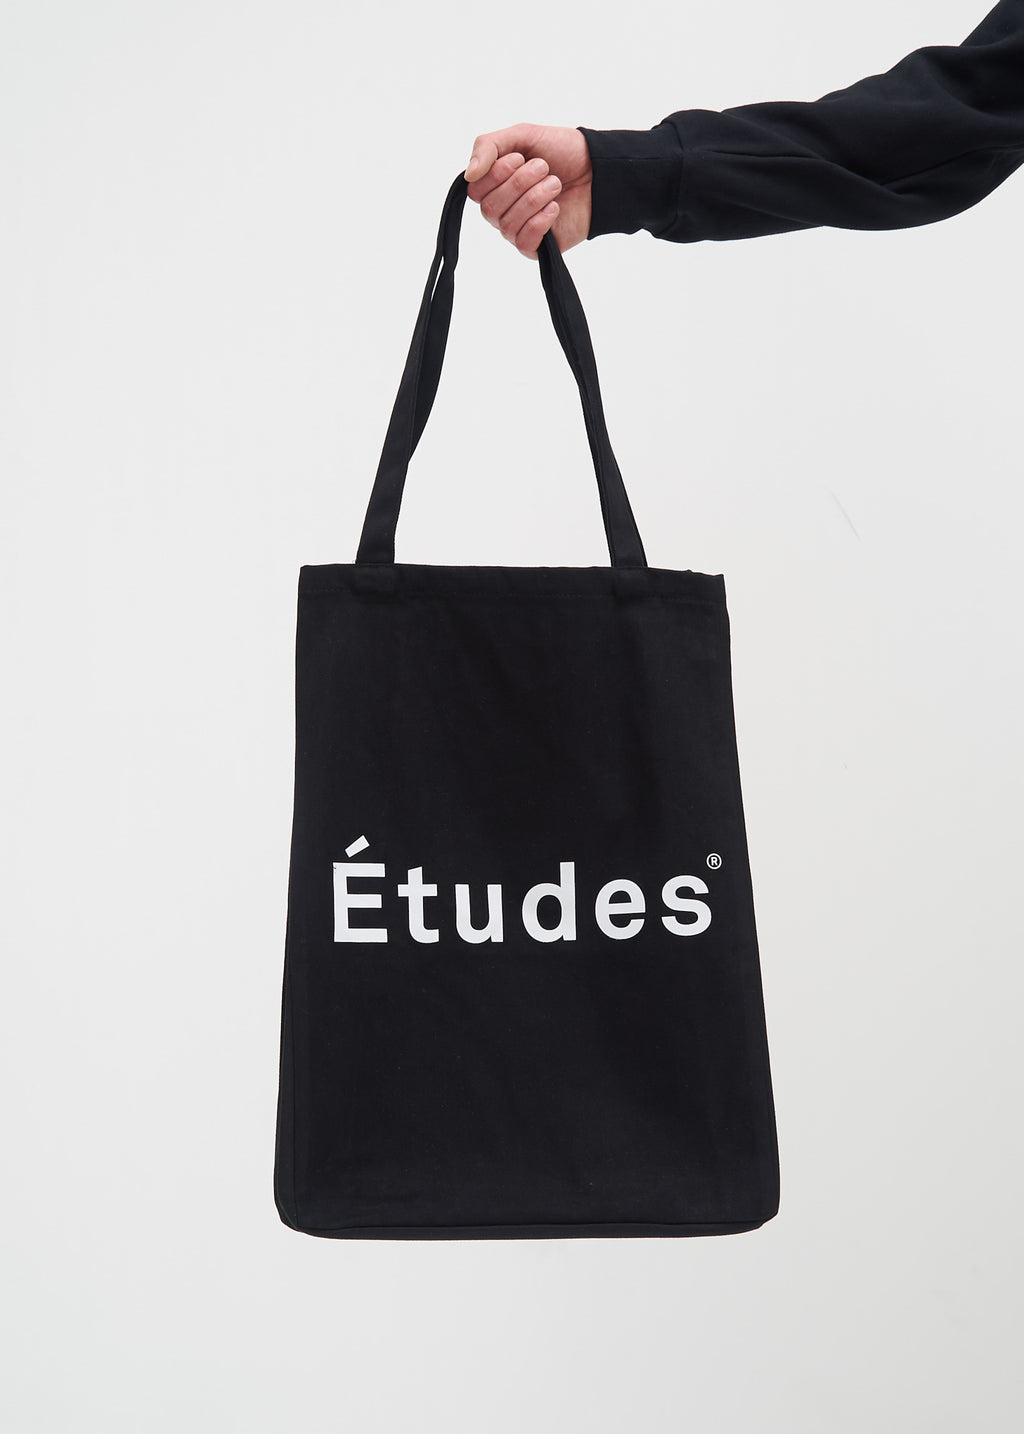 Black November Tote Bag